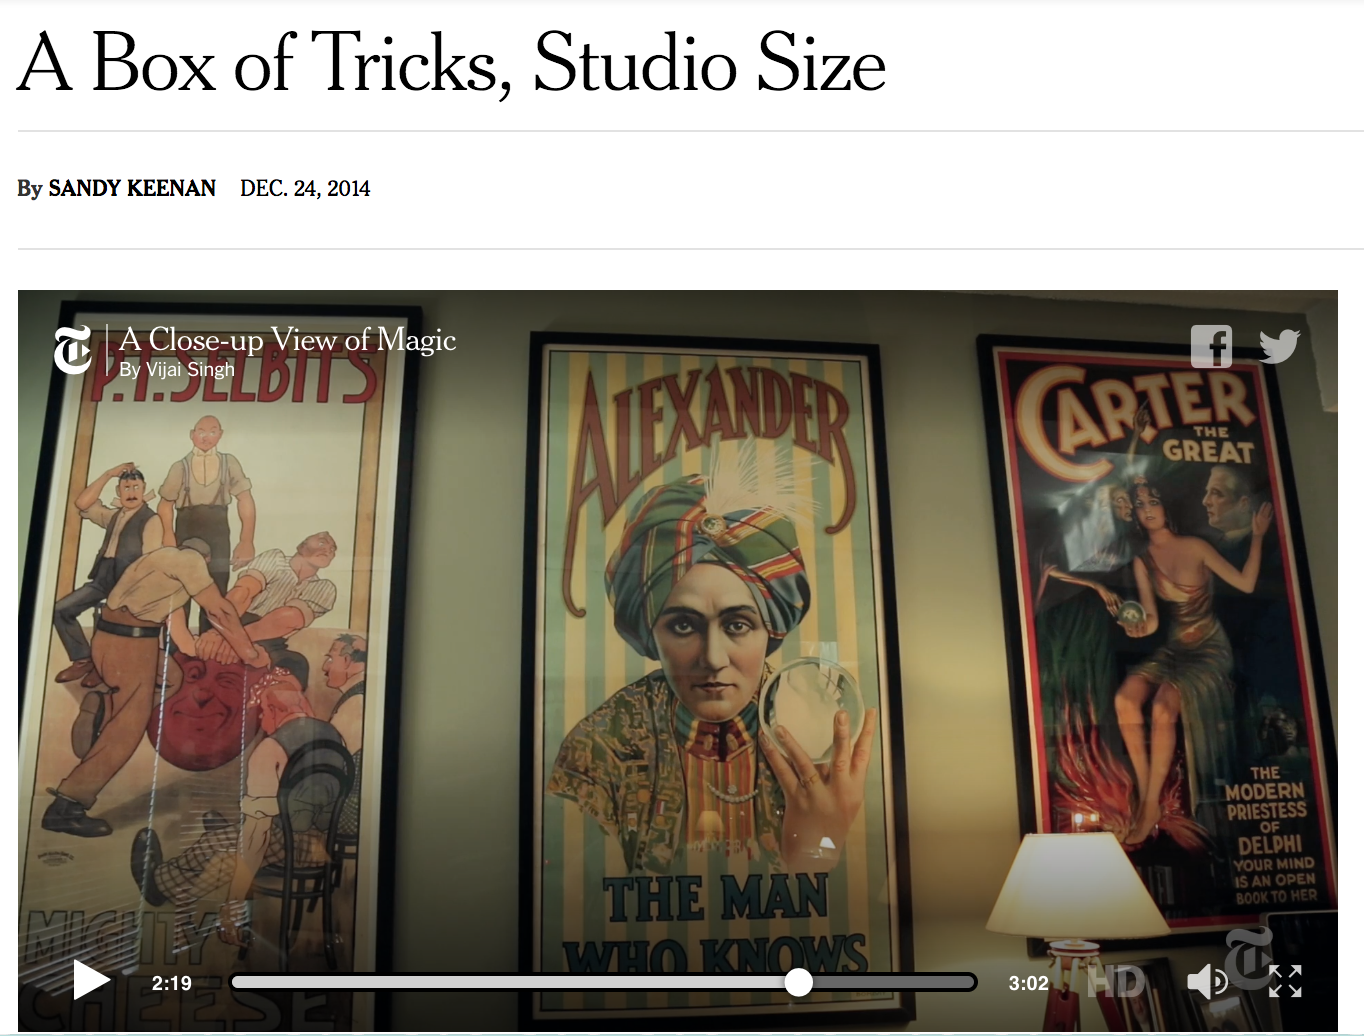 A Box of Tricks, Studio Size   from The New York Times December 2014